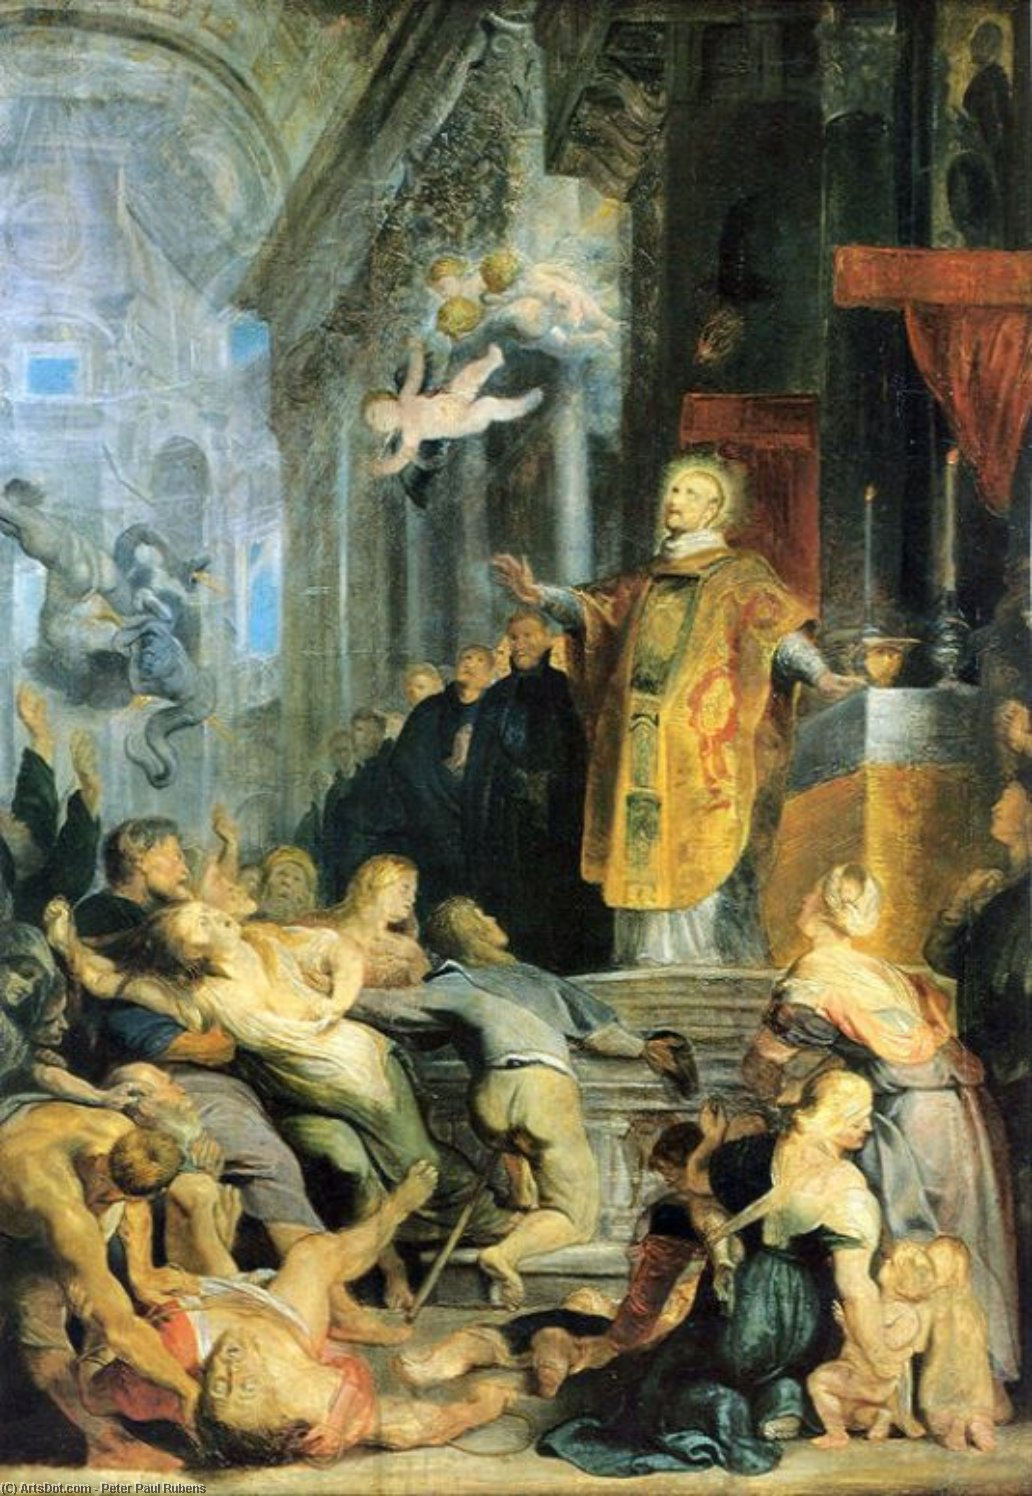 Wikioo.org - The Encyclopedia of Fine Arts - Painting, Artwork by Peter Paul Rubens - Miracle of St. Ignatius of Loyola